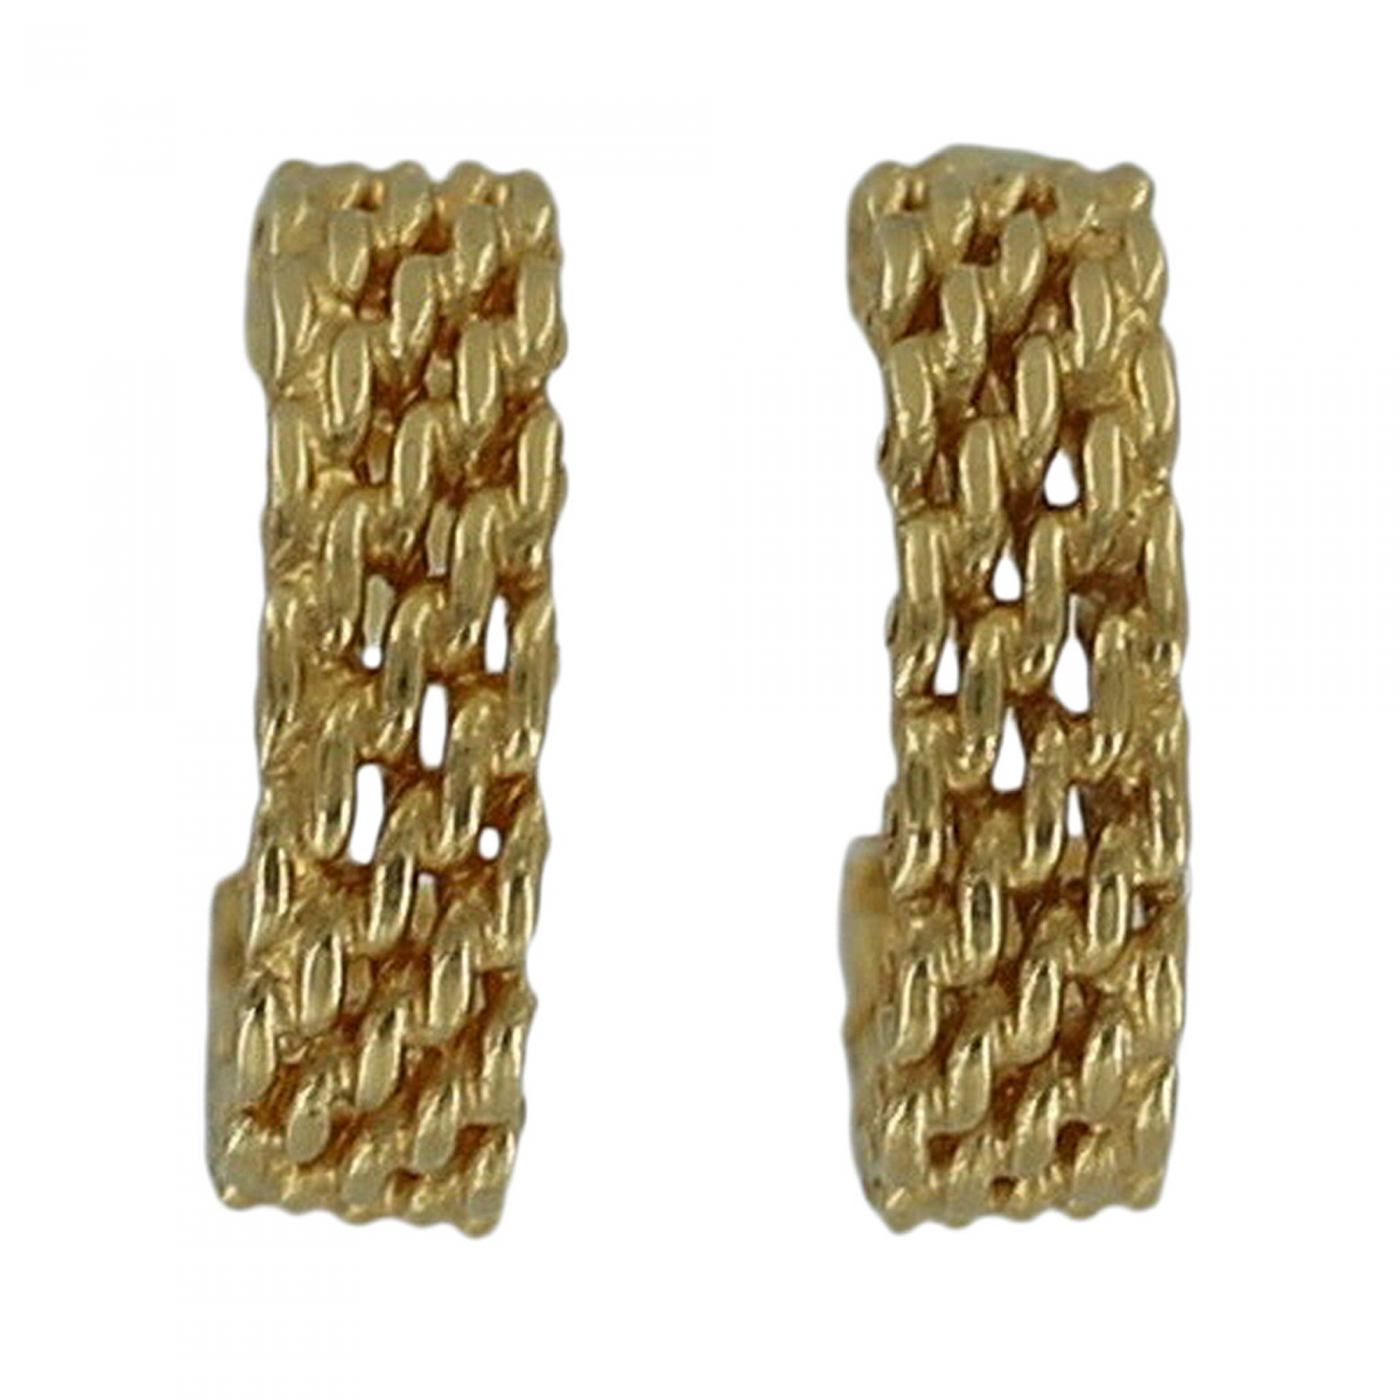 3b739b4216de4 Tiffany and Co. - Tiffany & Co. Somerset Woven Gold Hoop Earrings